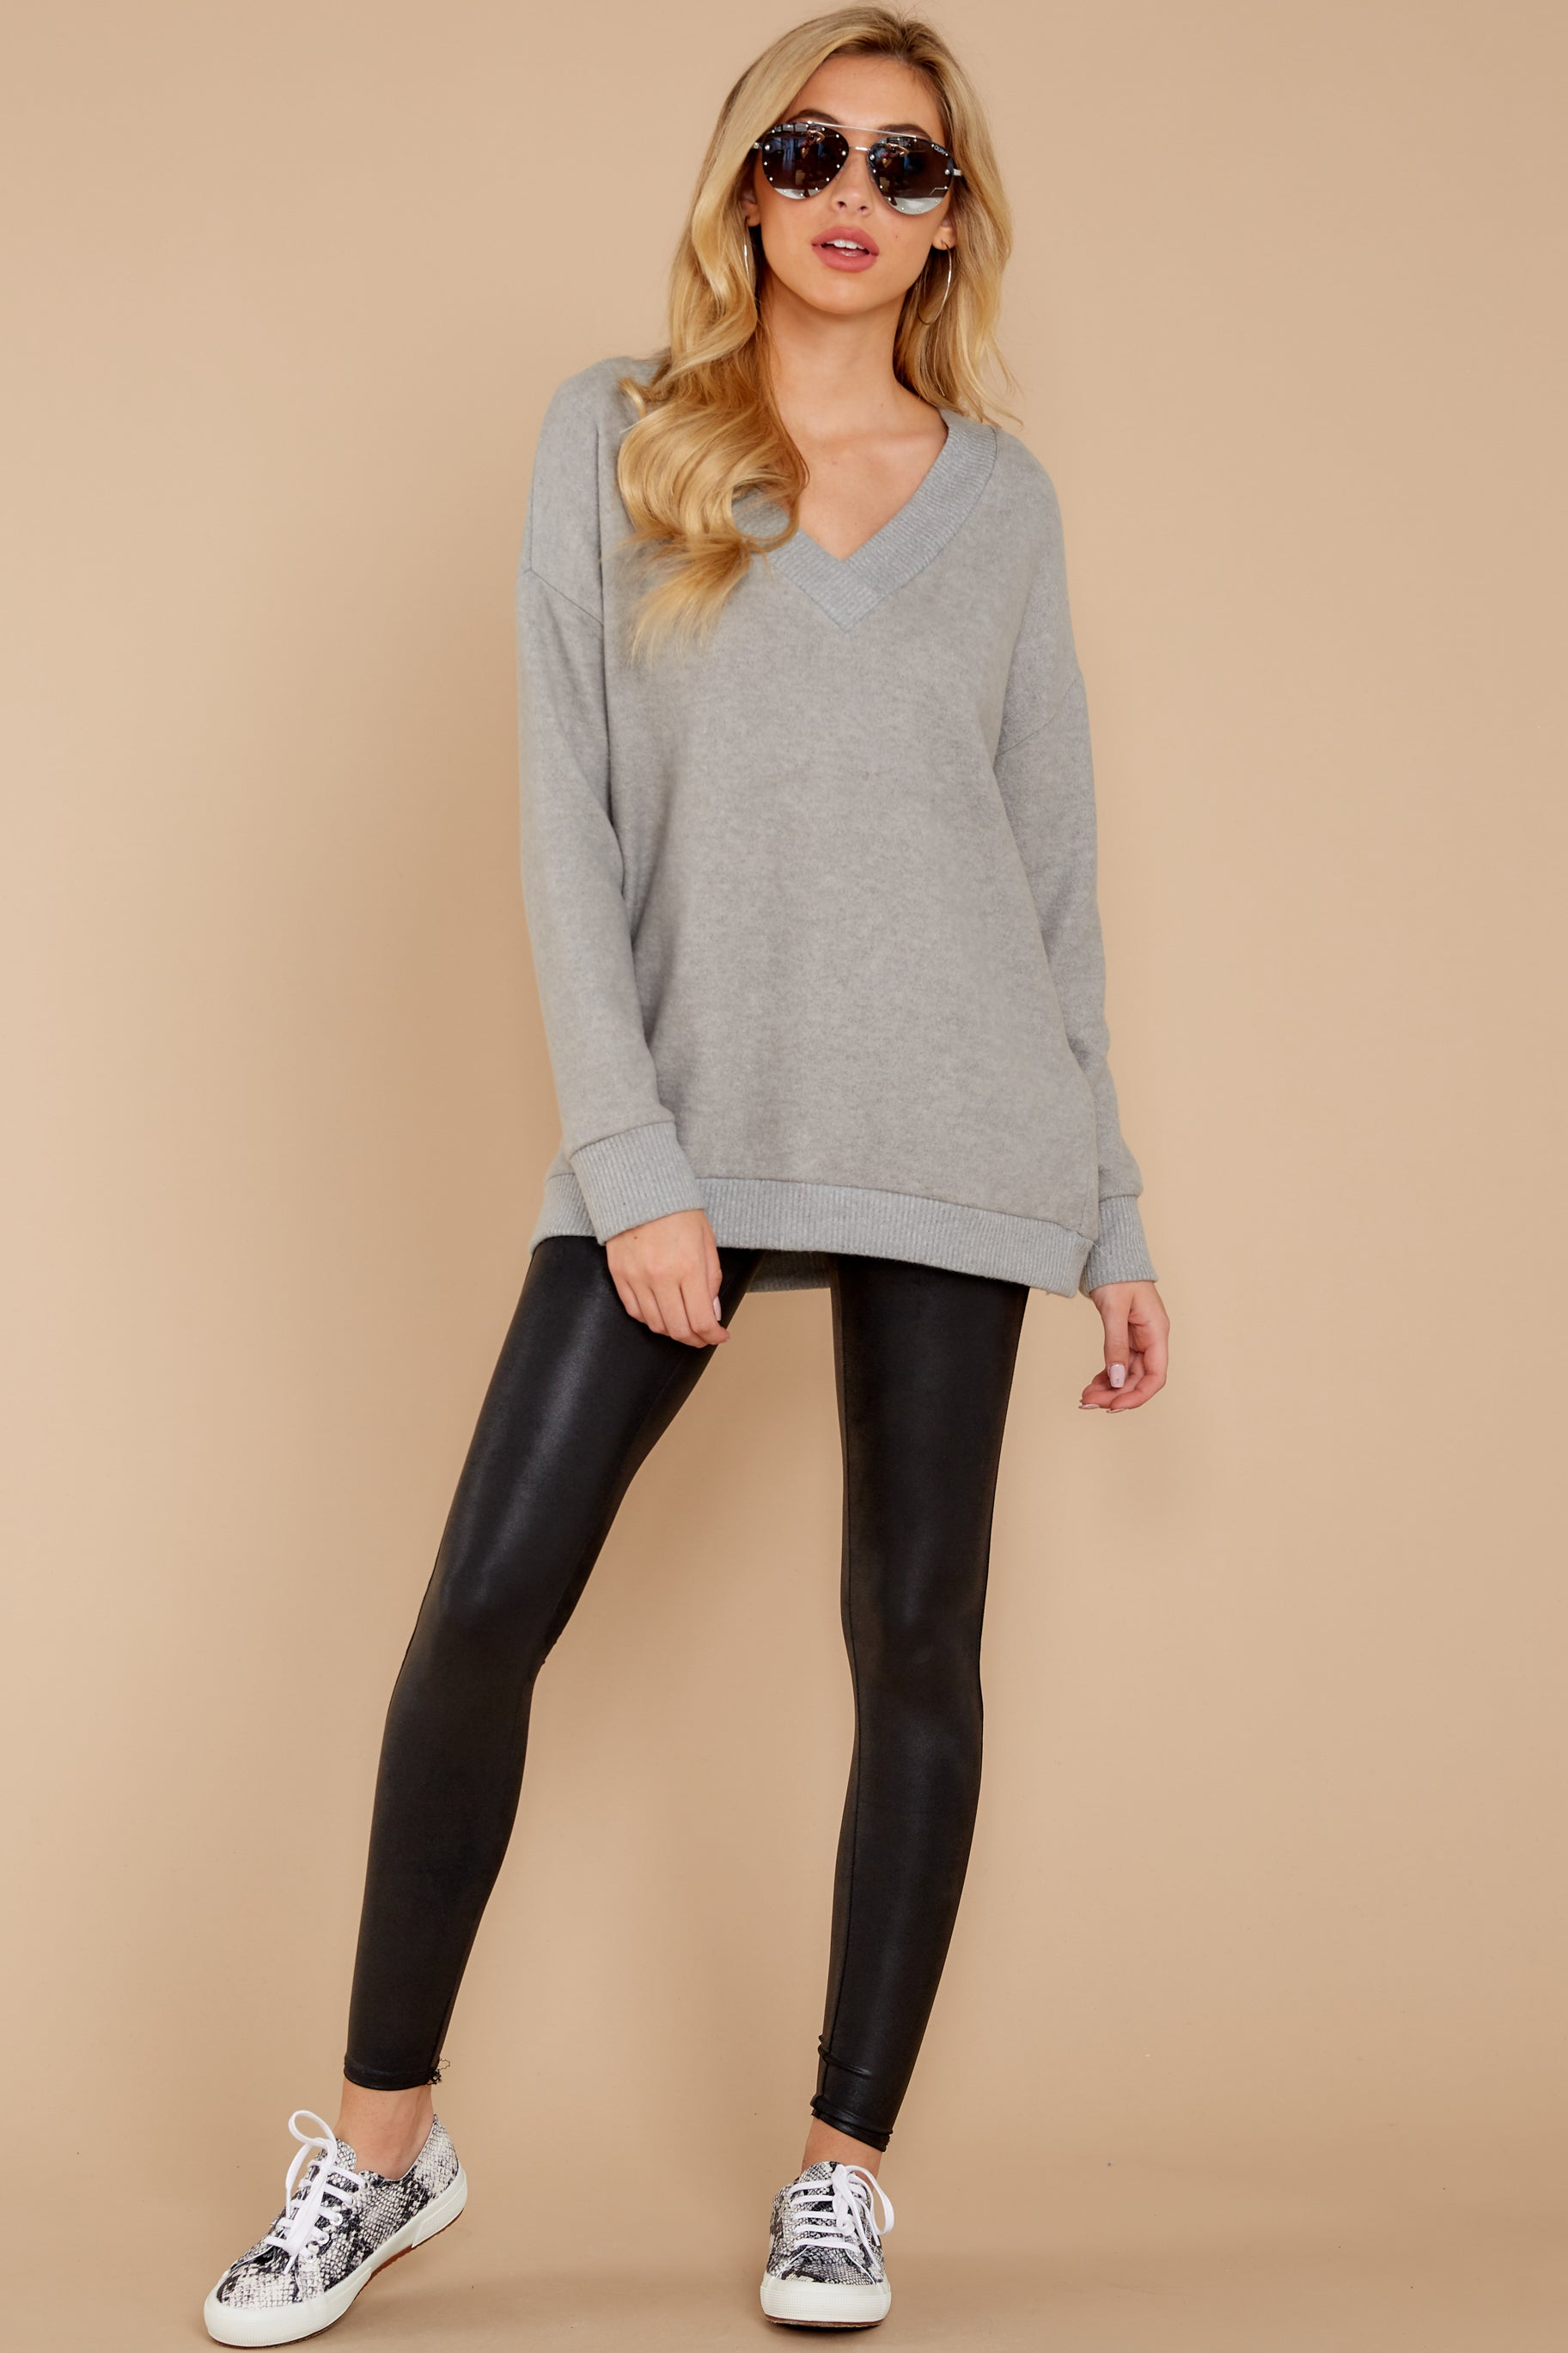 1 Soon Enough Heather Grey Sweater at reddressboutique.com